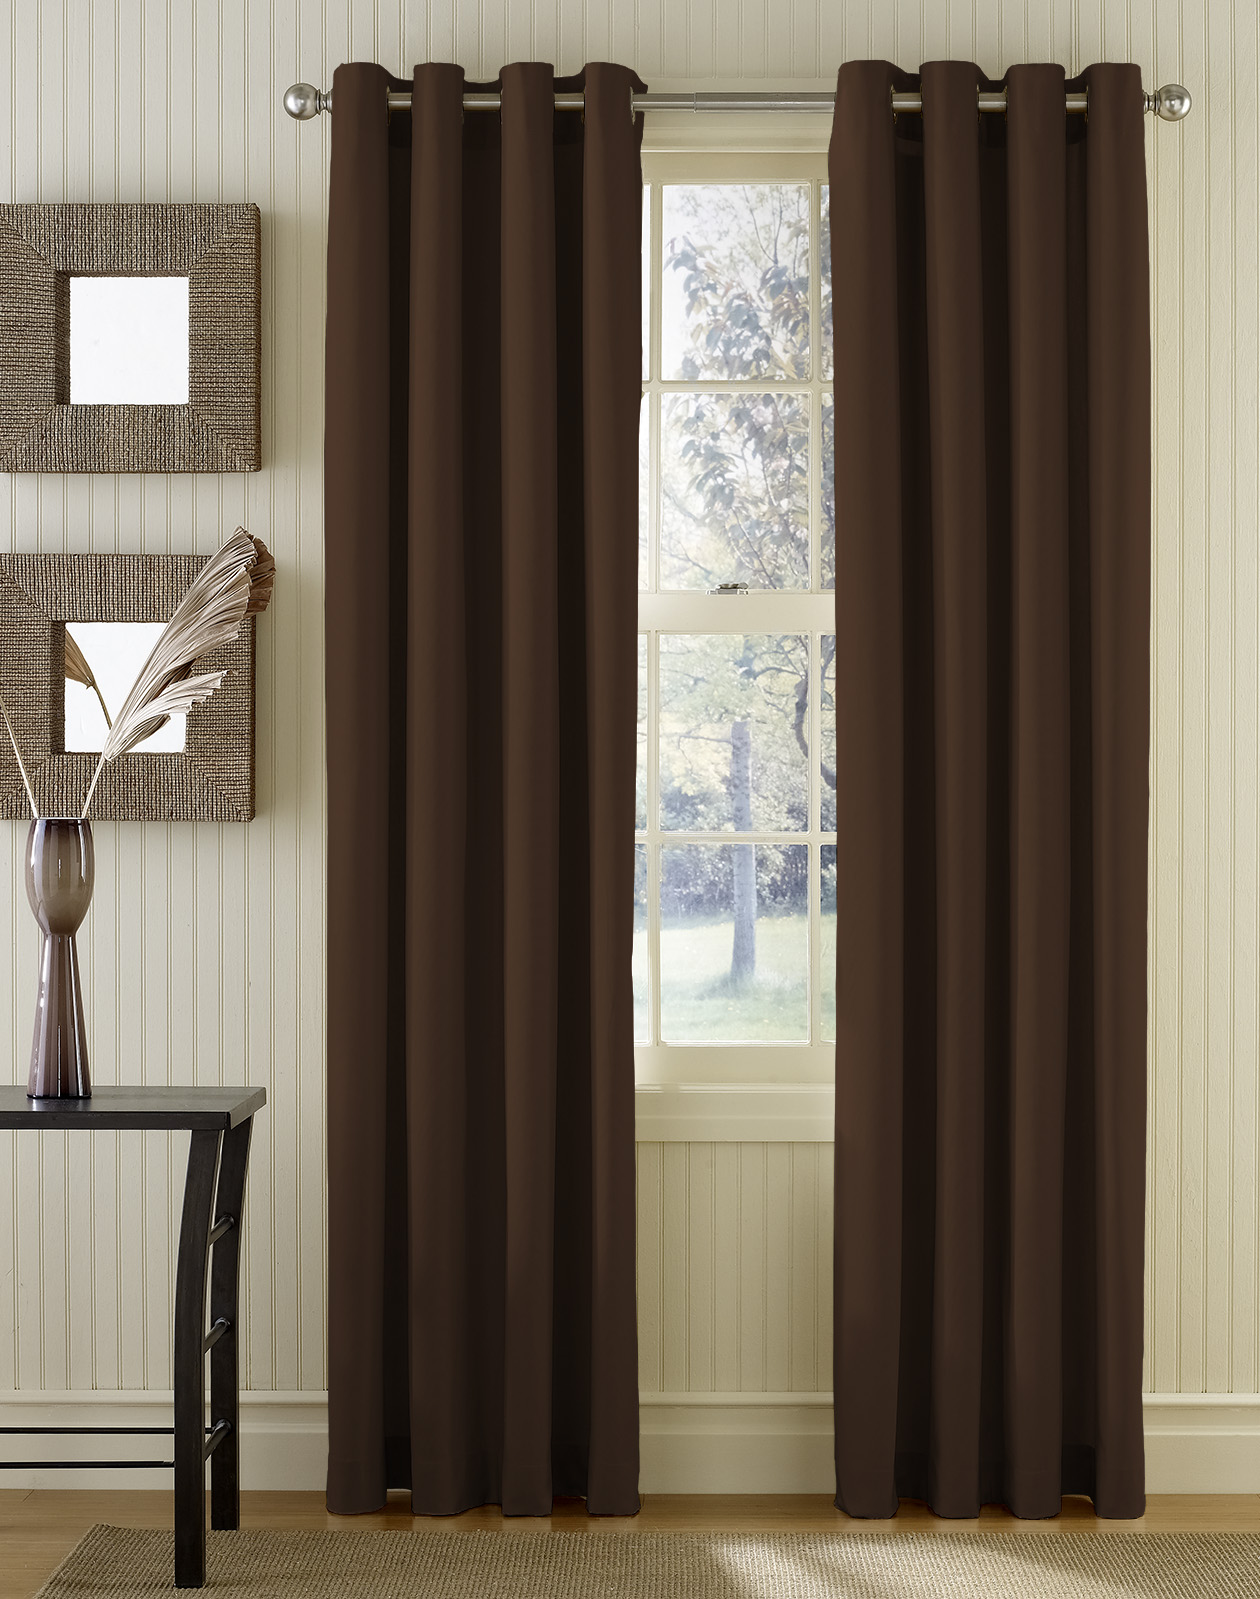 Curtain Interior Design